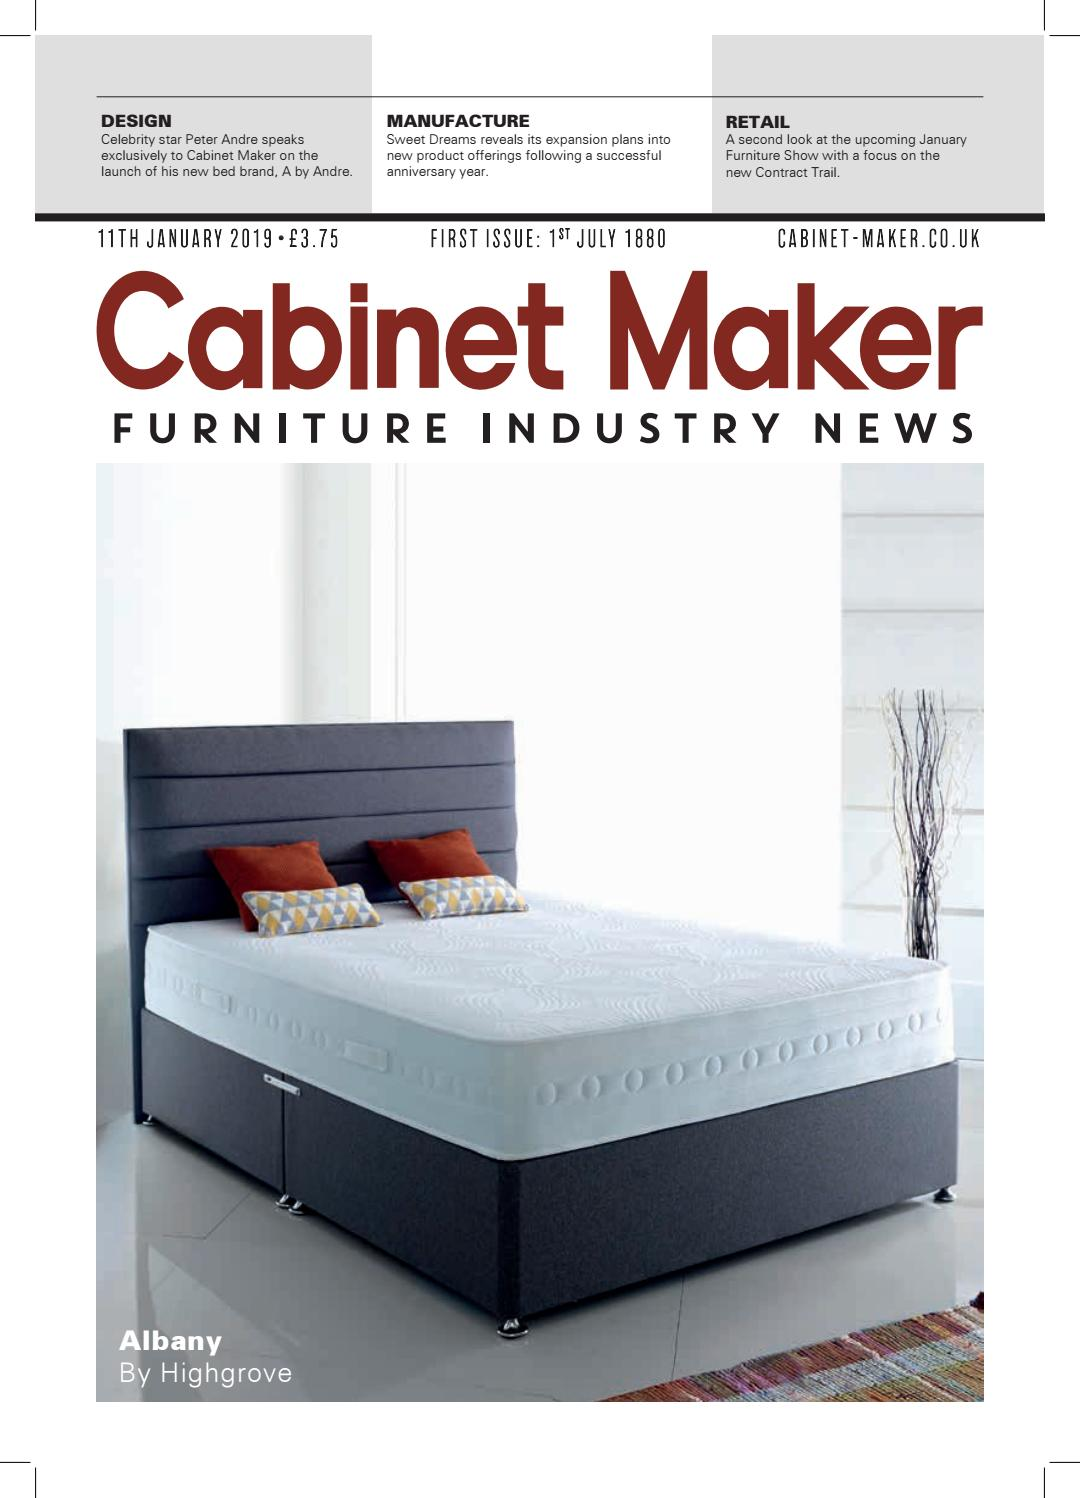 Meubles Rauch France Cabinet Maker 11th January 2019 By Chloe Bowers Issuu